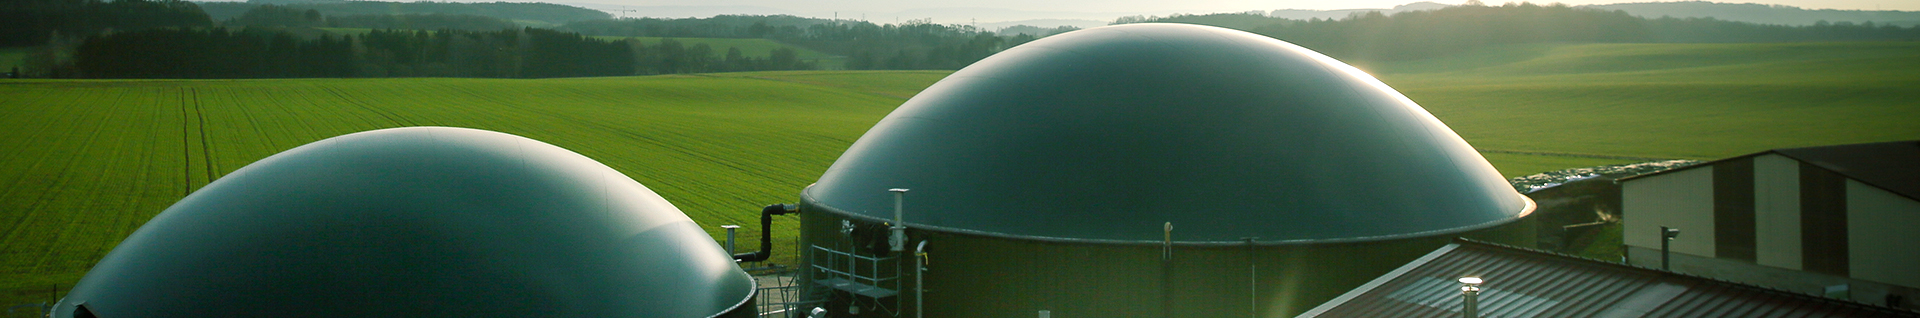 biomethane filiere d'avenir